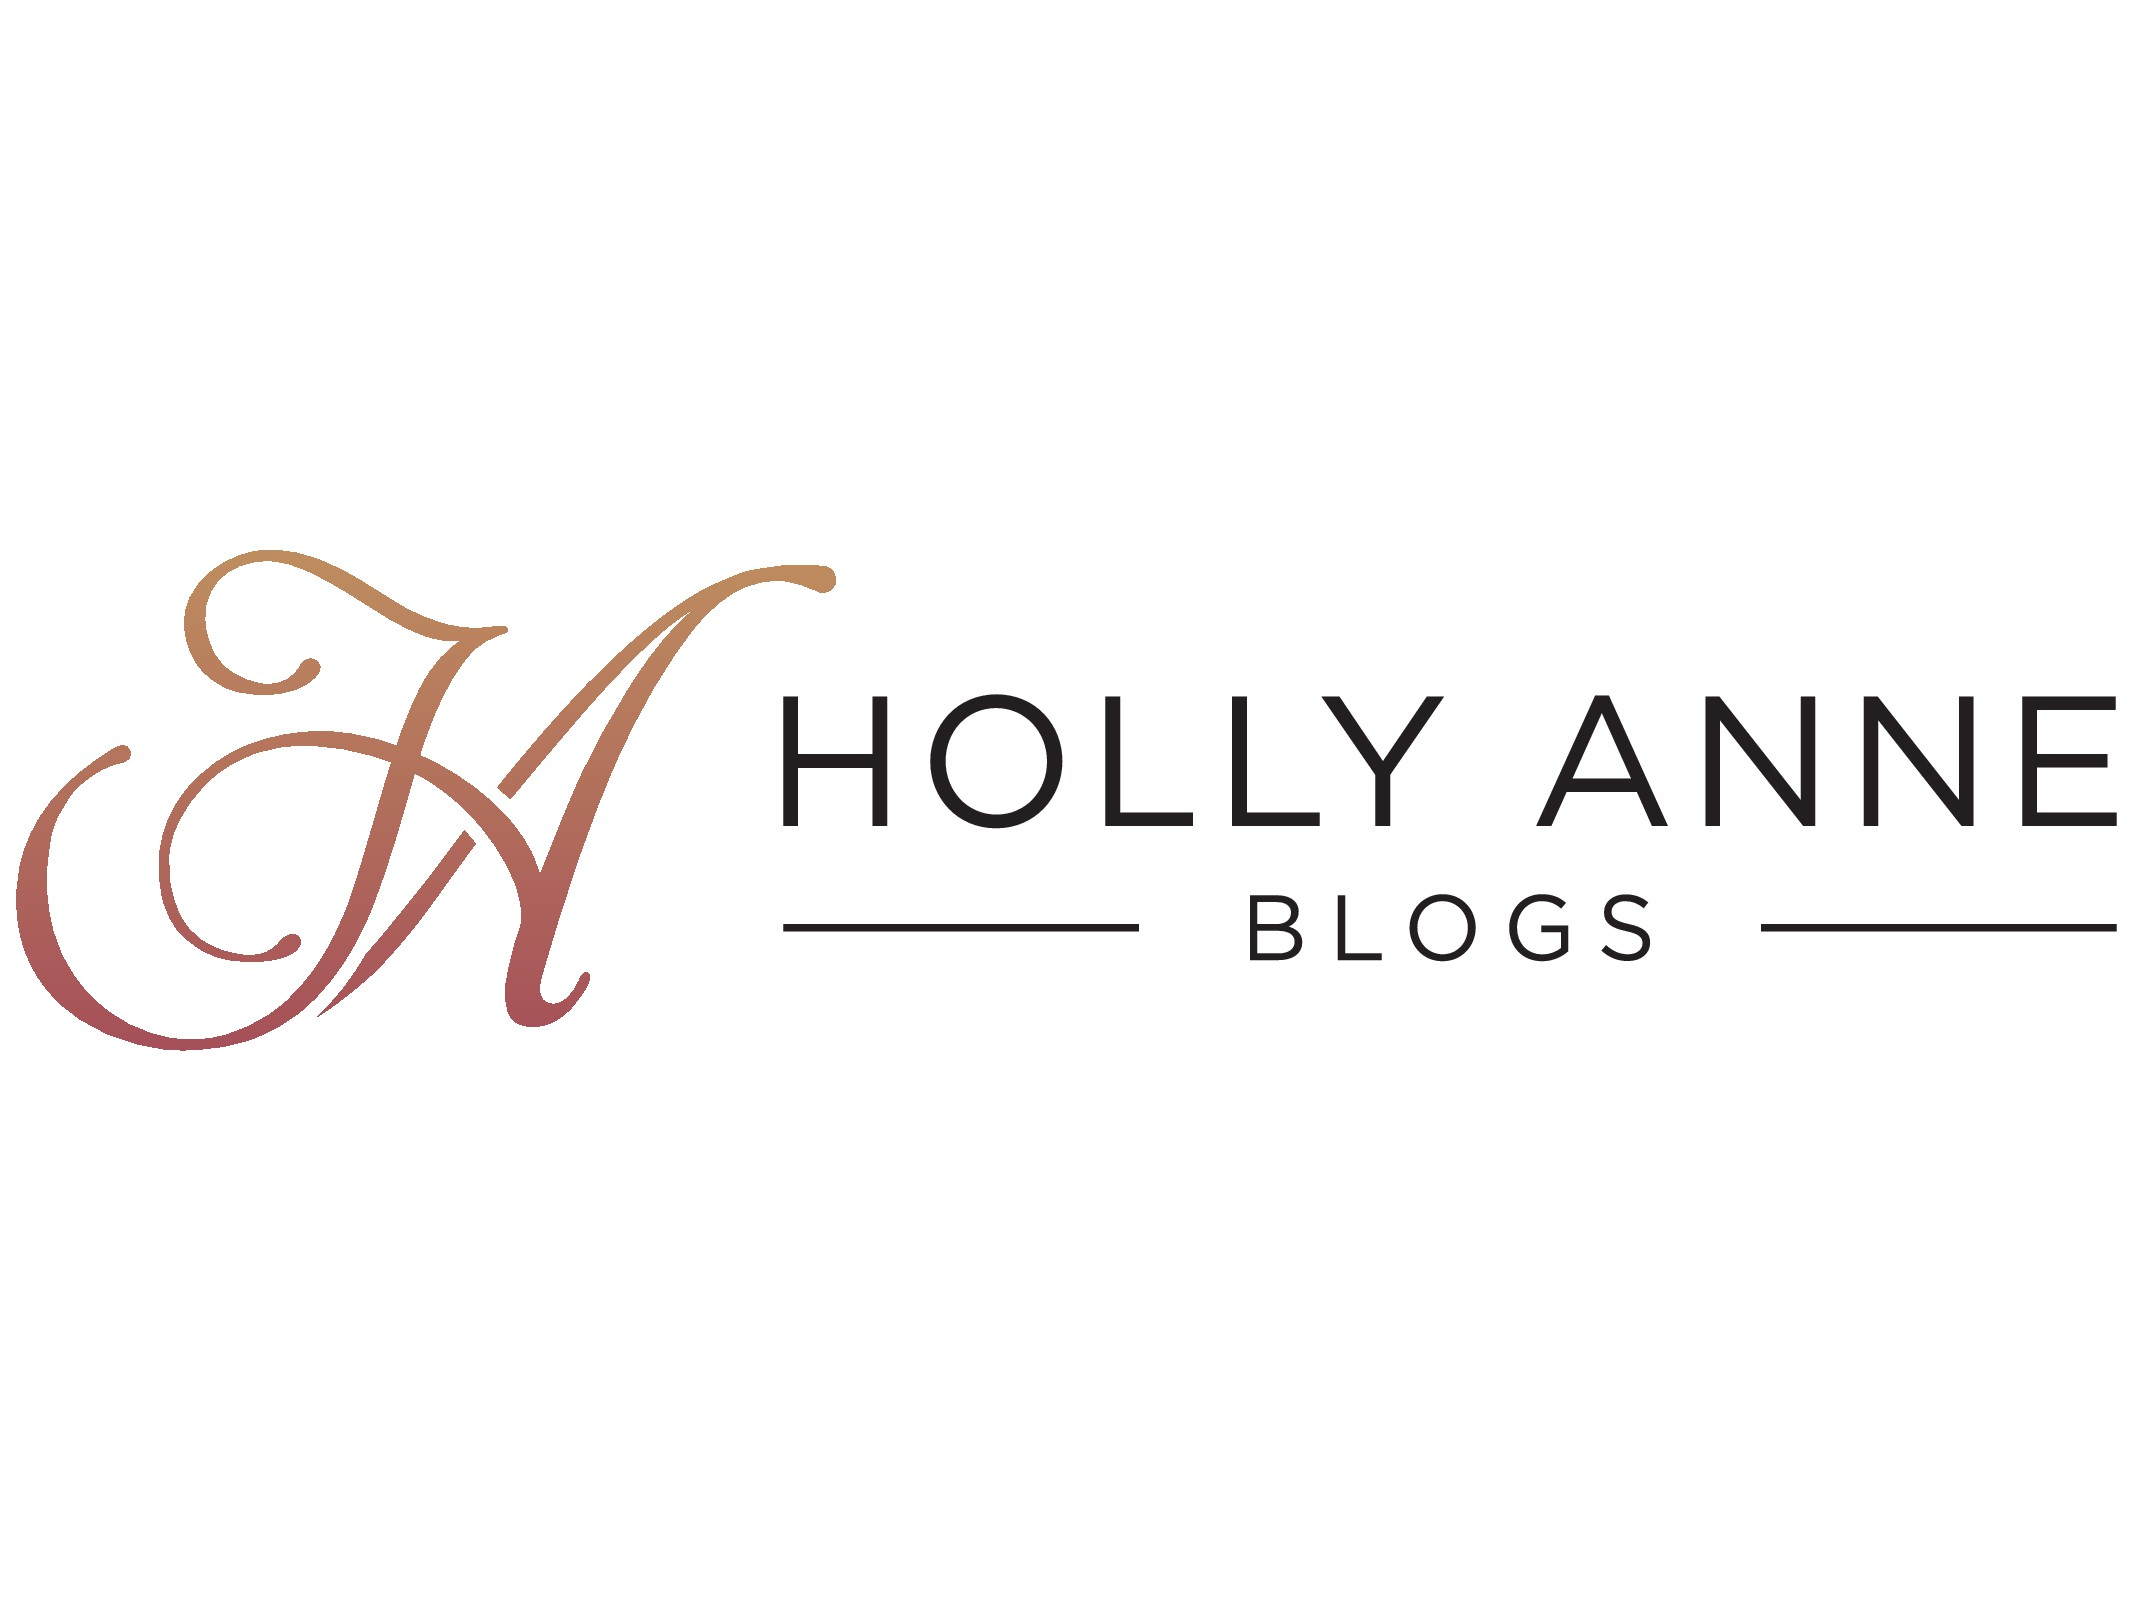 Looking for a simple yet sophisticated logo for a makeup / lifestyle blog